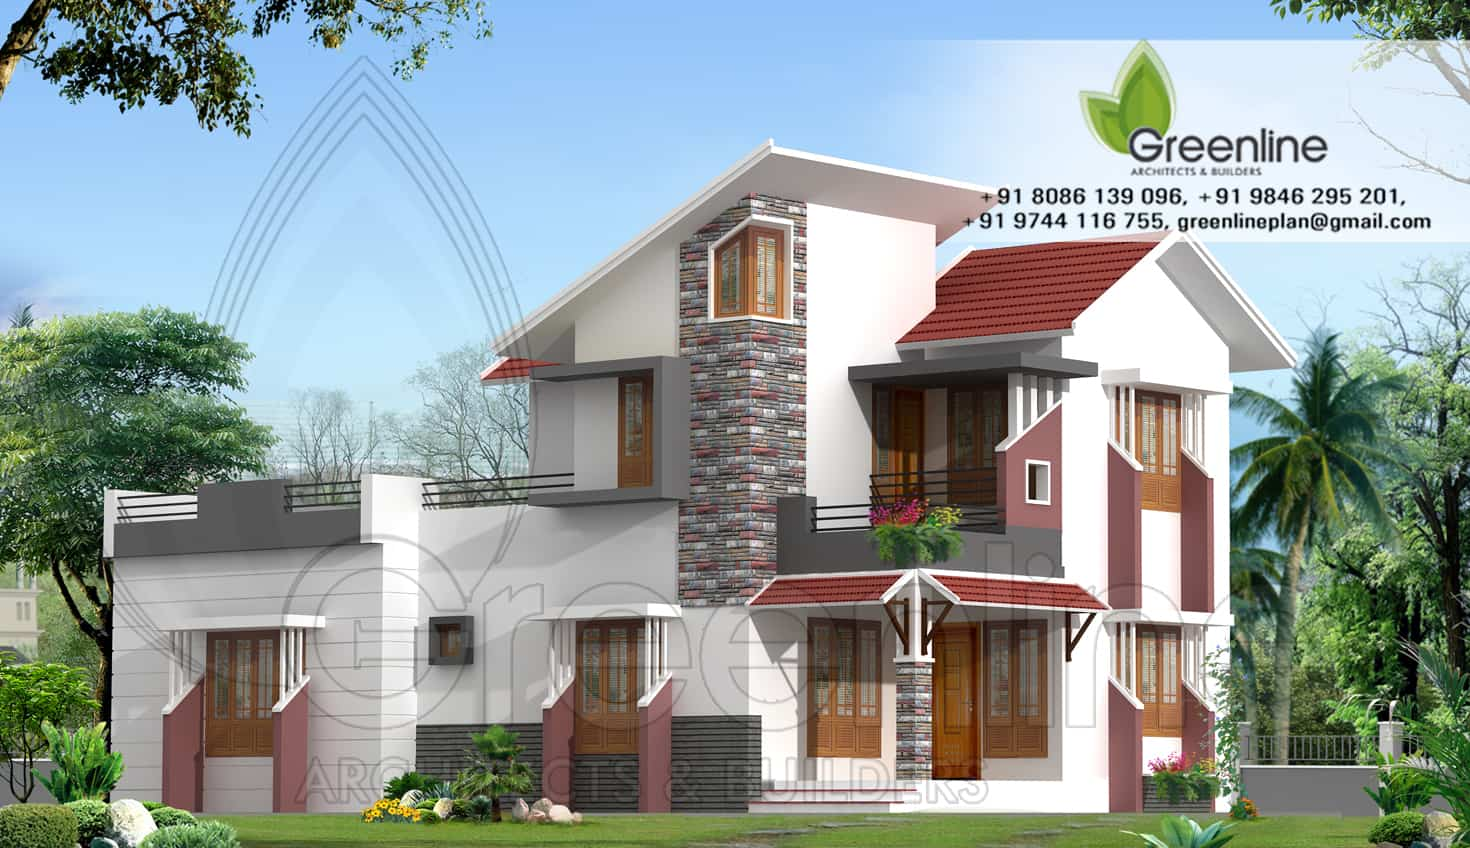 Kerala home design 5 17 keralahouseplanner home for Kerala home designs com